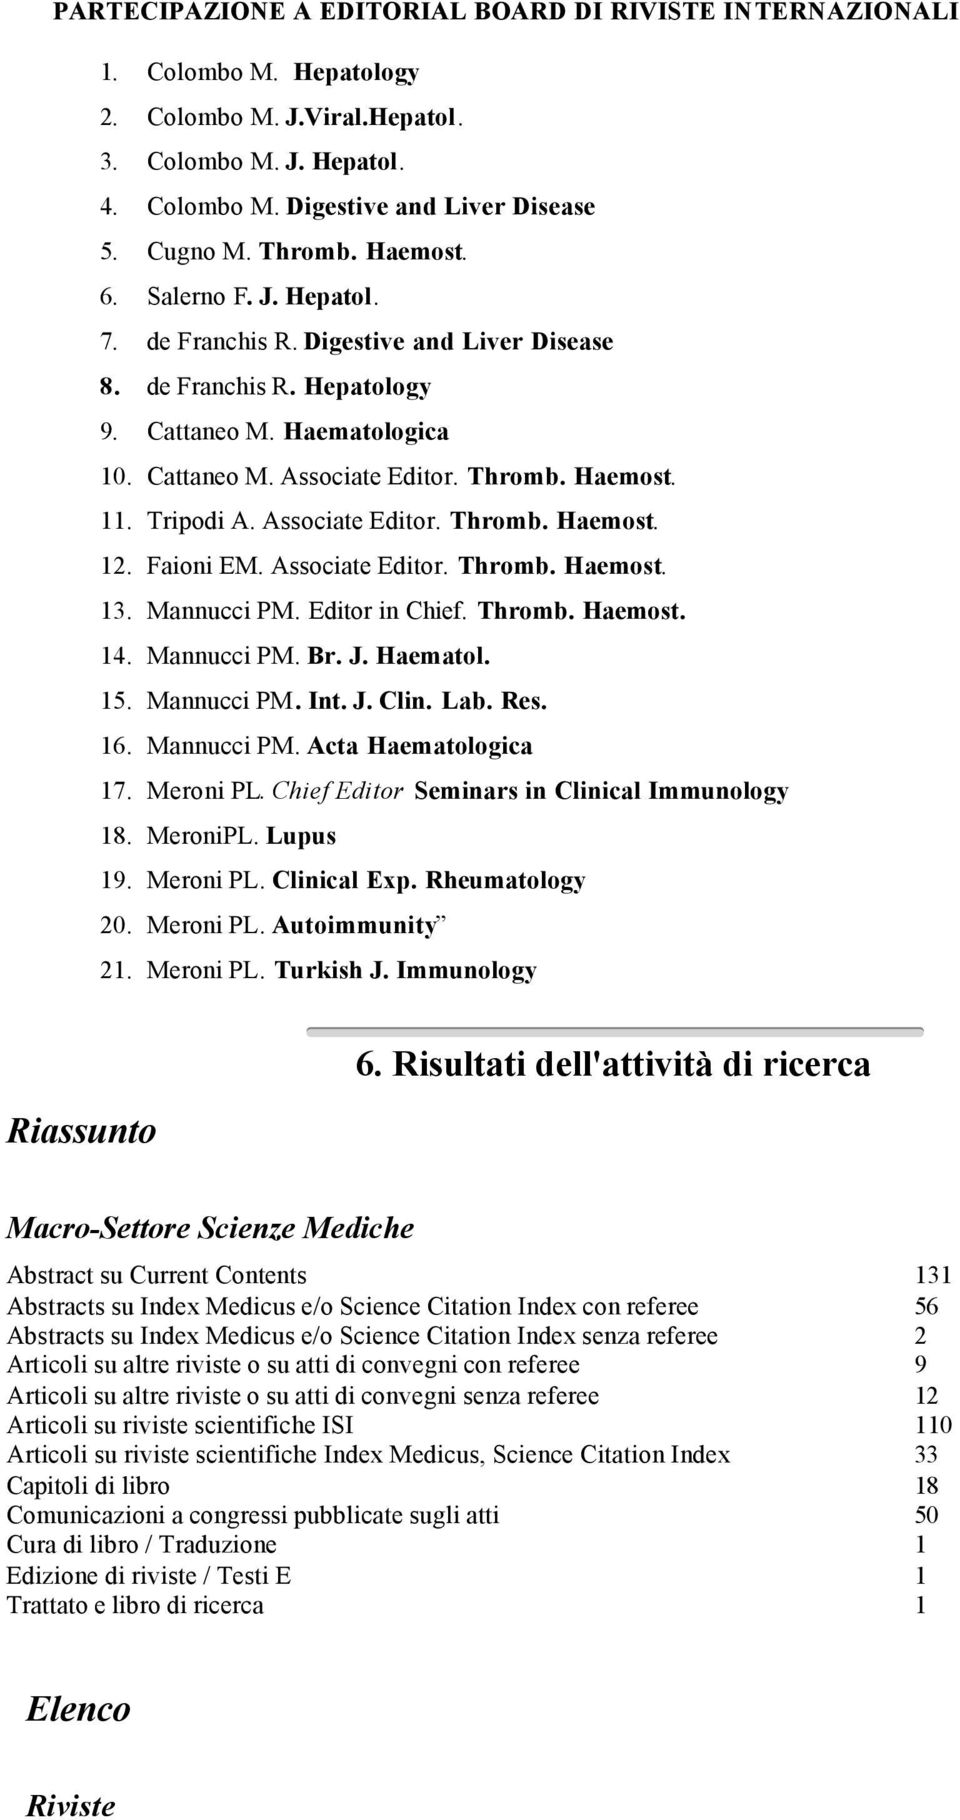 Tripodi A. Associate Editor. Thromb. Haemost. 12. Faioni EM. Associate Editor. Thromb. Haemost. 13. Mannucci PM. Editor in Chief. Thromb. Haemost. 14. Mannucci PM. Br. J. Haematol. 15. Mannucci PM. Int.